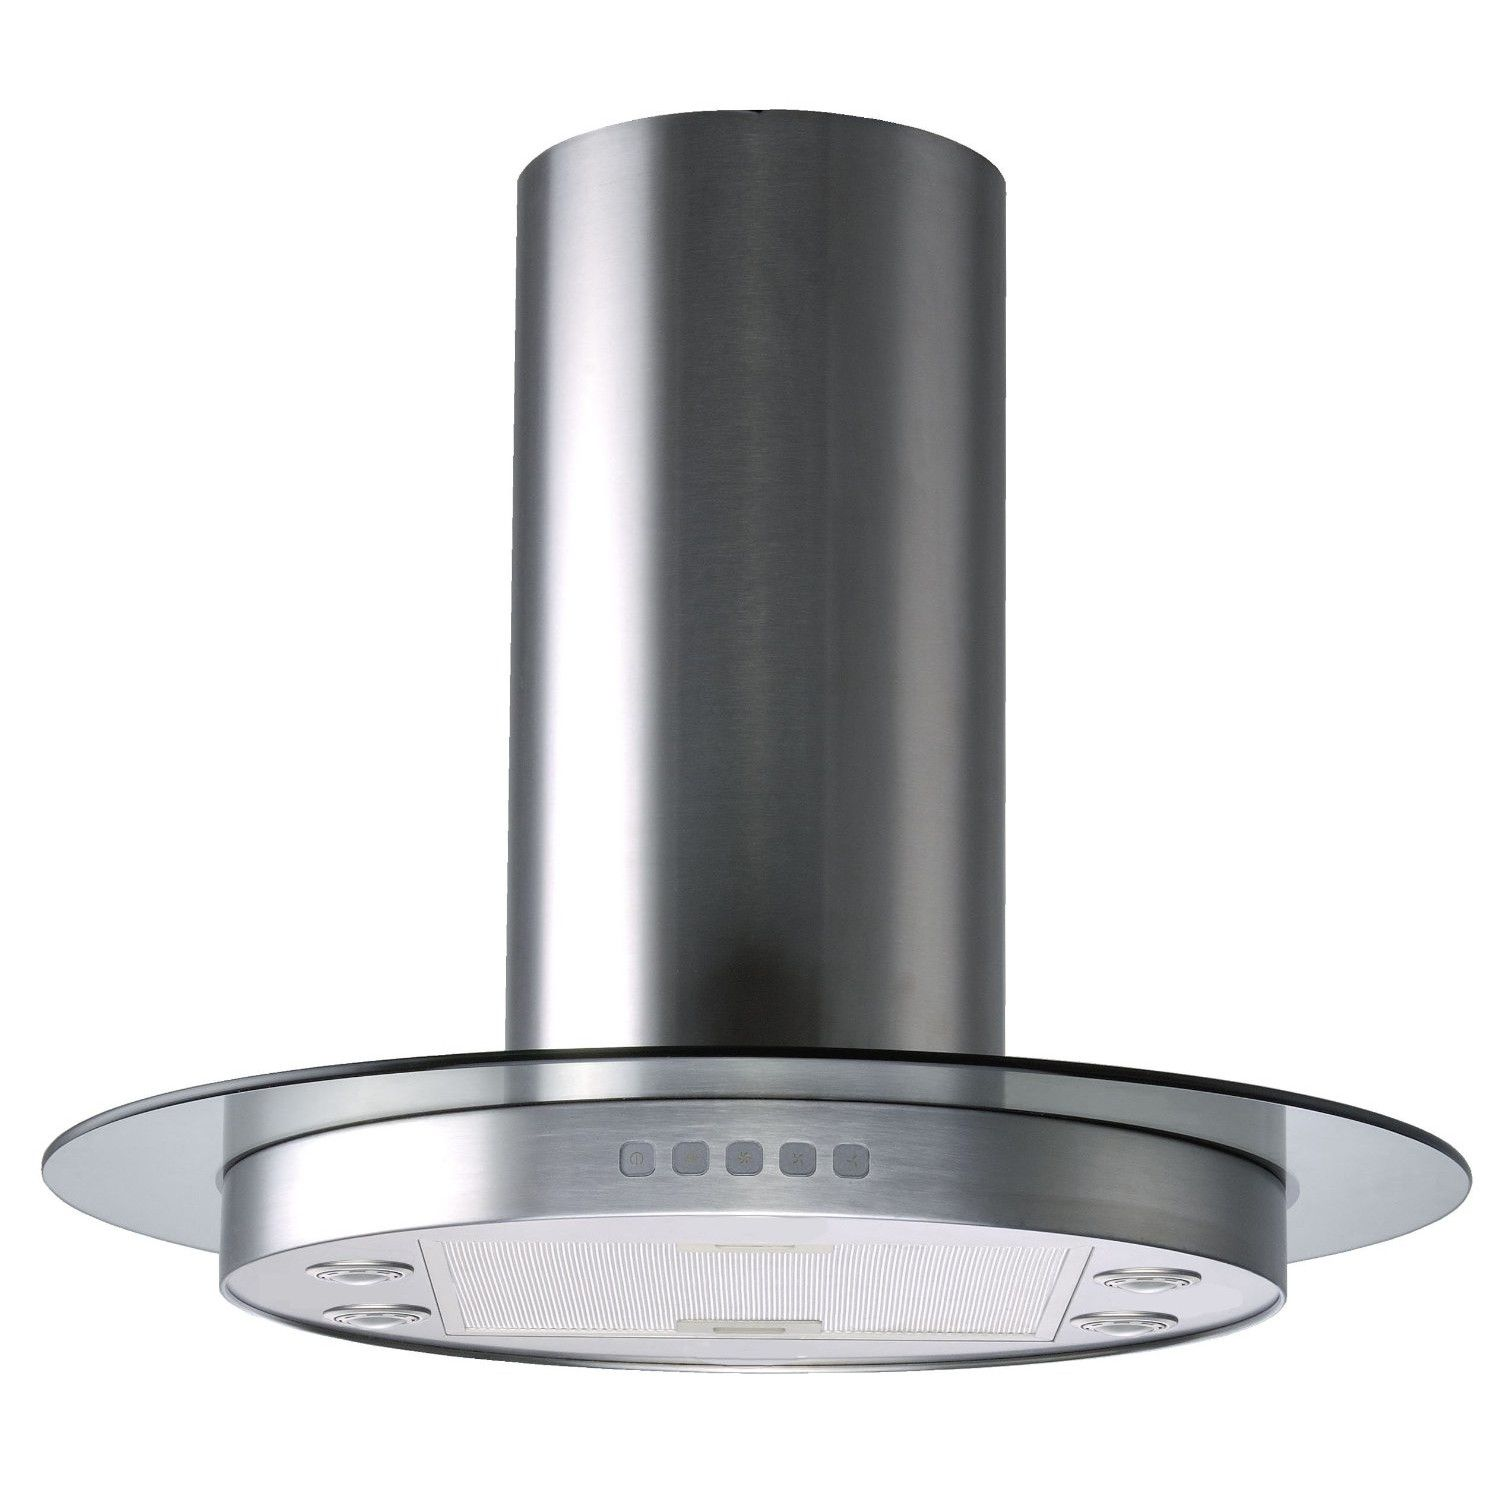 This Is My Favorite Hood Vent There S Another Pin Showing It Applied In A Setti Kitchen Bath Collection Stainless Steel Kitchen Island Stainless Steel Island